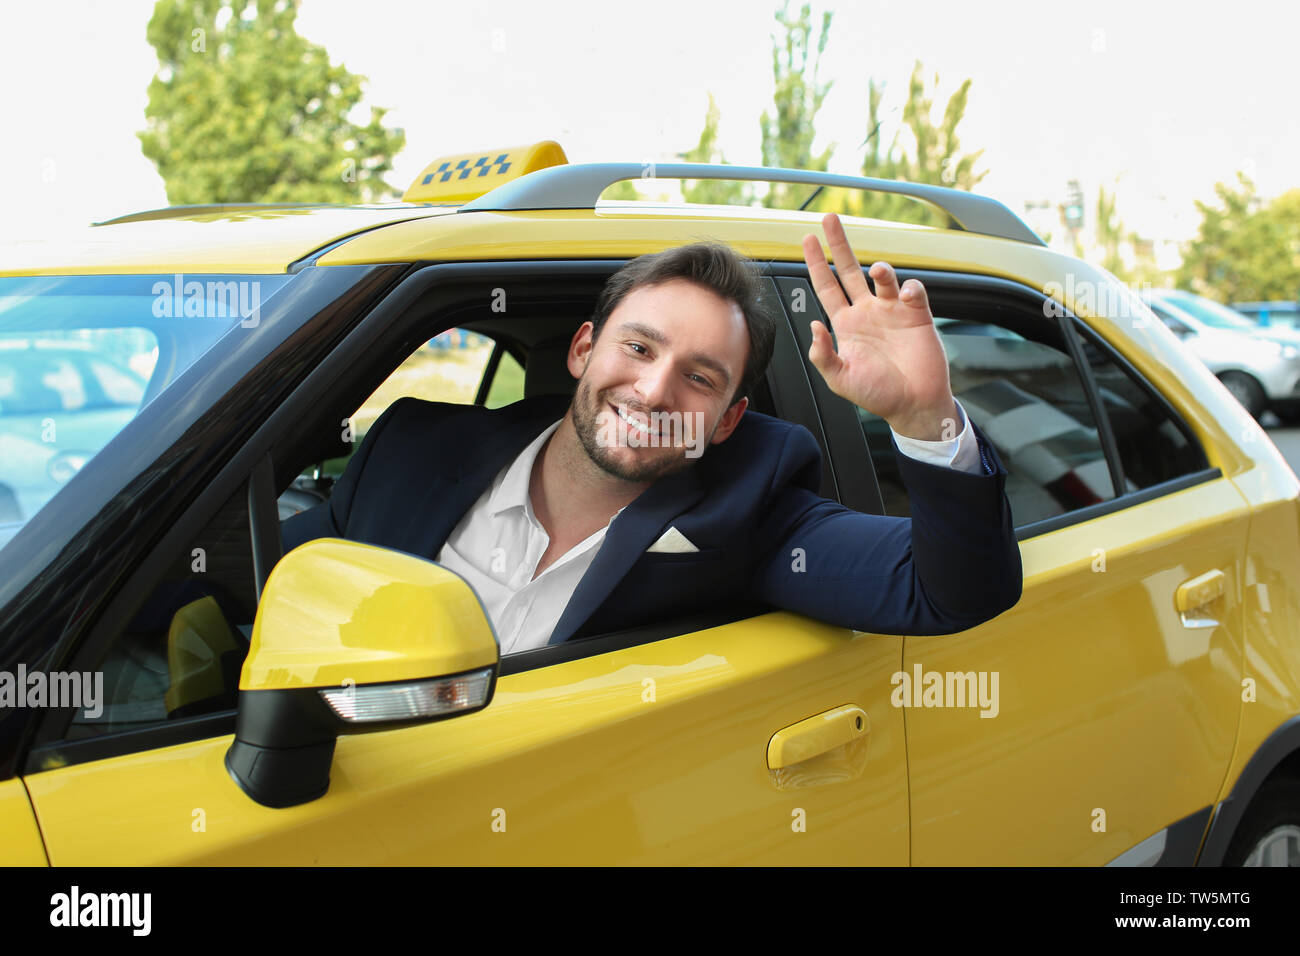 Male taxi driver sitting in yellow car - Stock Image